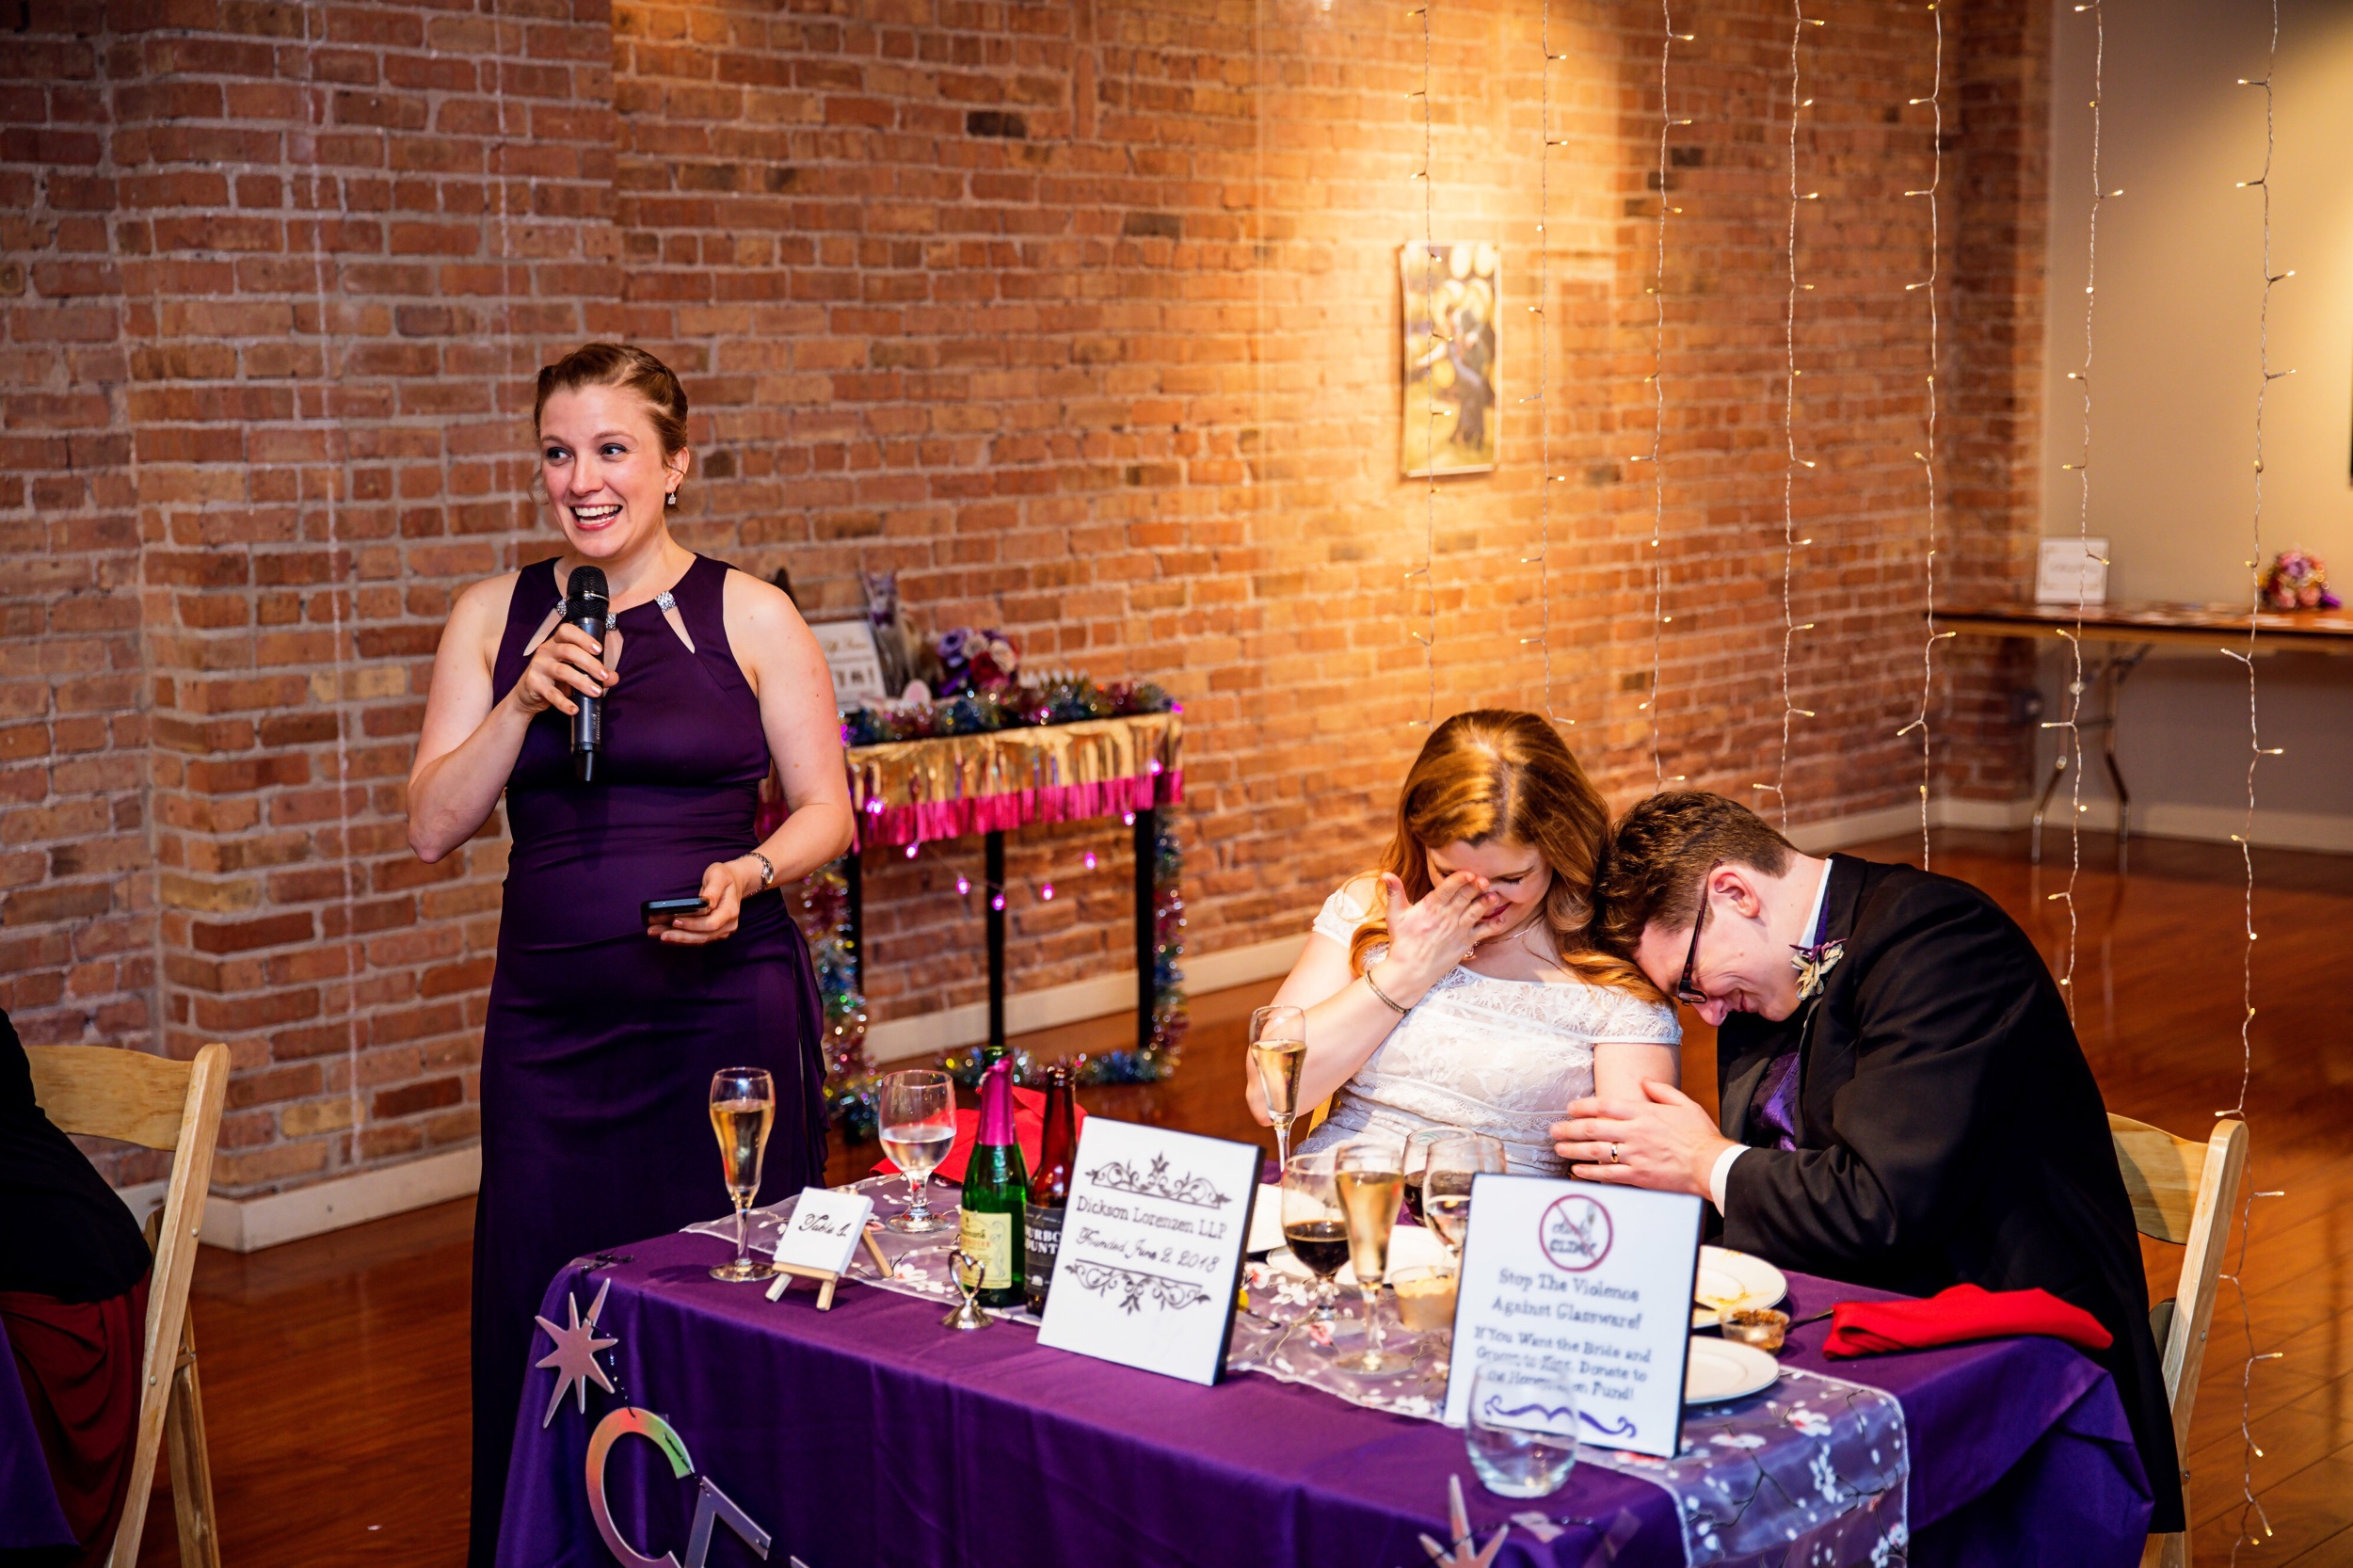 """You can see a photo print in the background of this photo where my sister Karen embarrasses me with a delightful toast talking about my """"don't call me cute!"""" phase from childhood, hah. Photo credit to Kevin Monahan Photography!"""